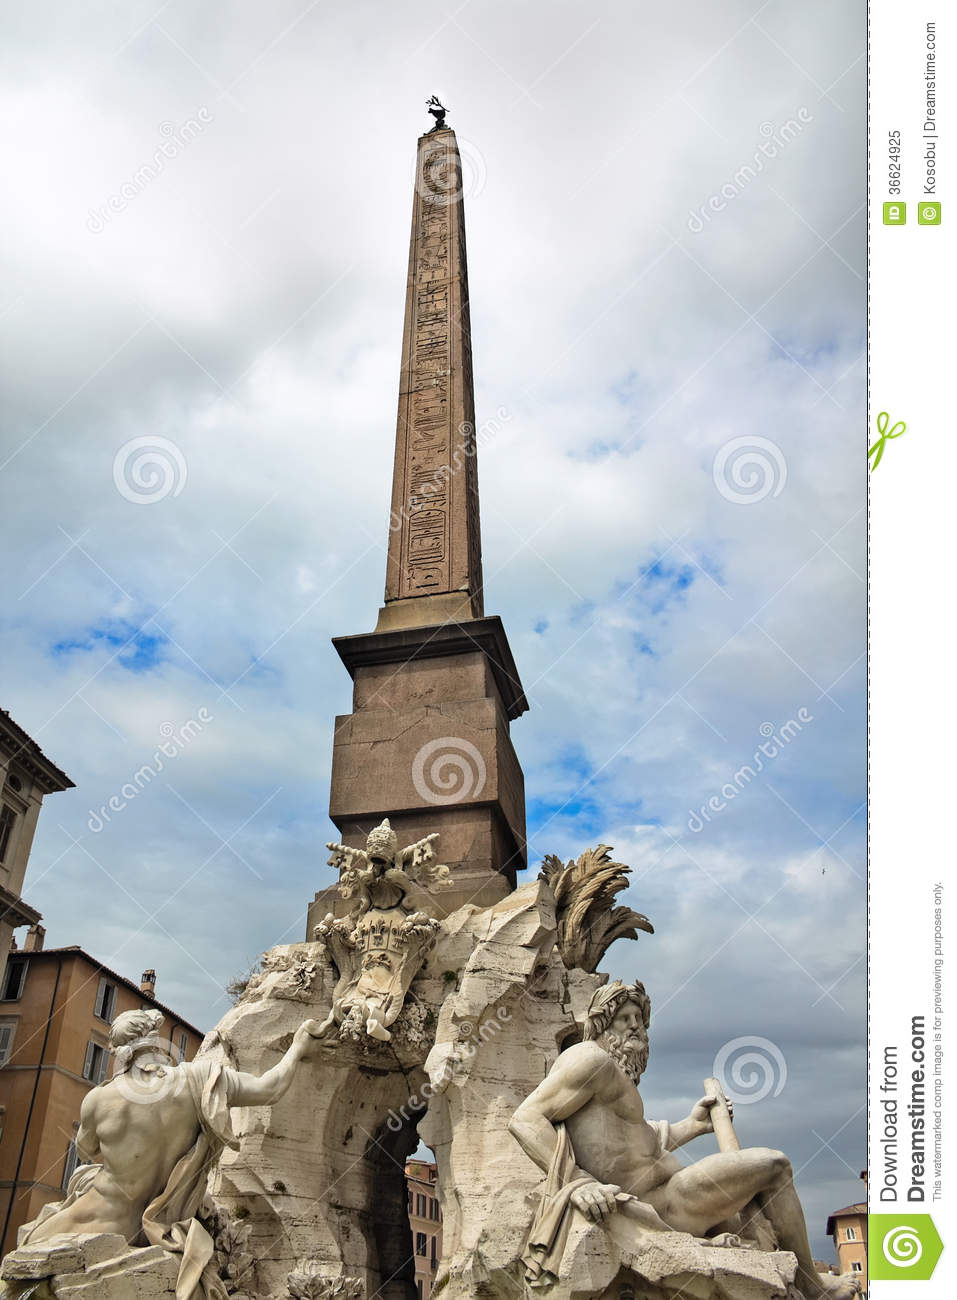 Fountain Of The Four Rivers Piazza Navona Rome Italy